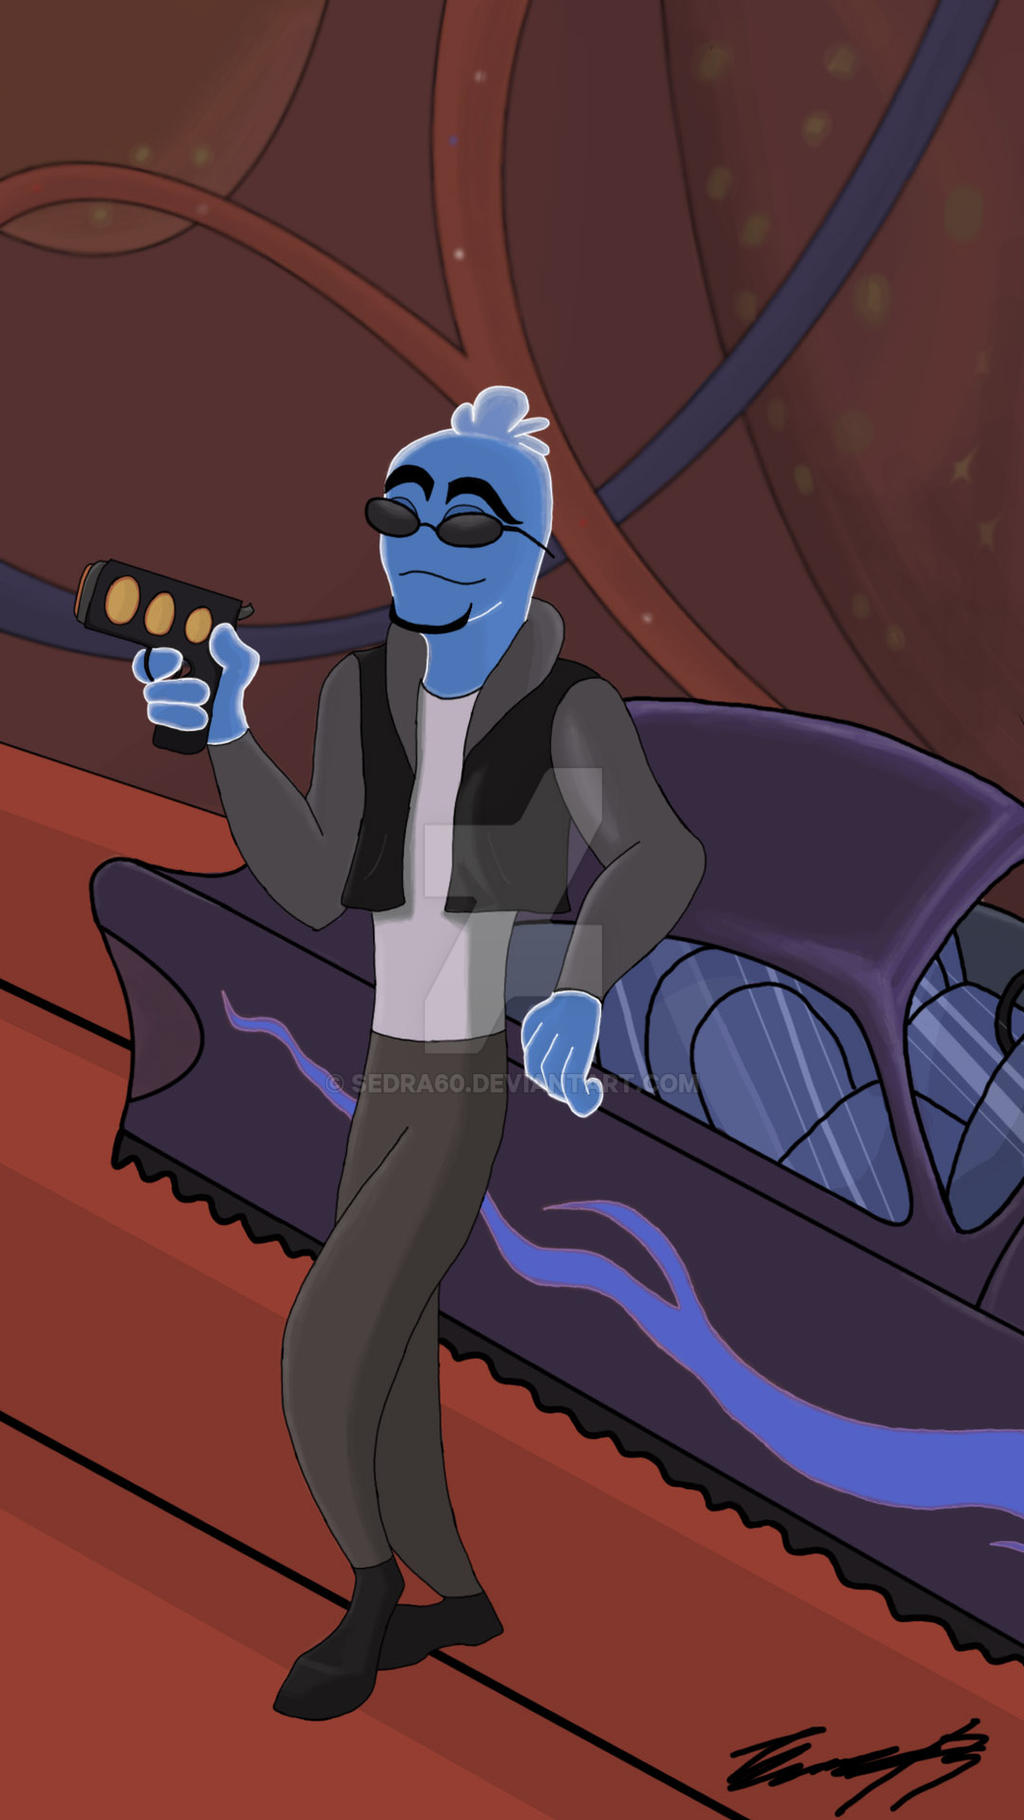 Osmosis Jones Girl Osmosis Jones by Sedra60